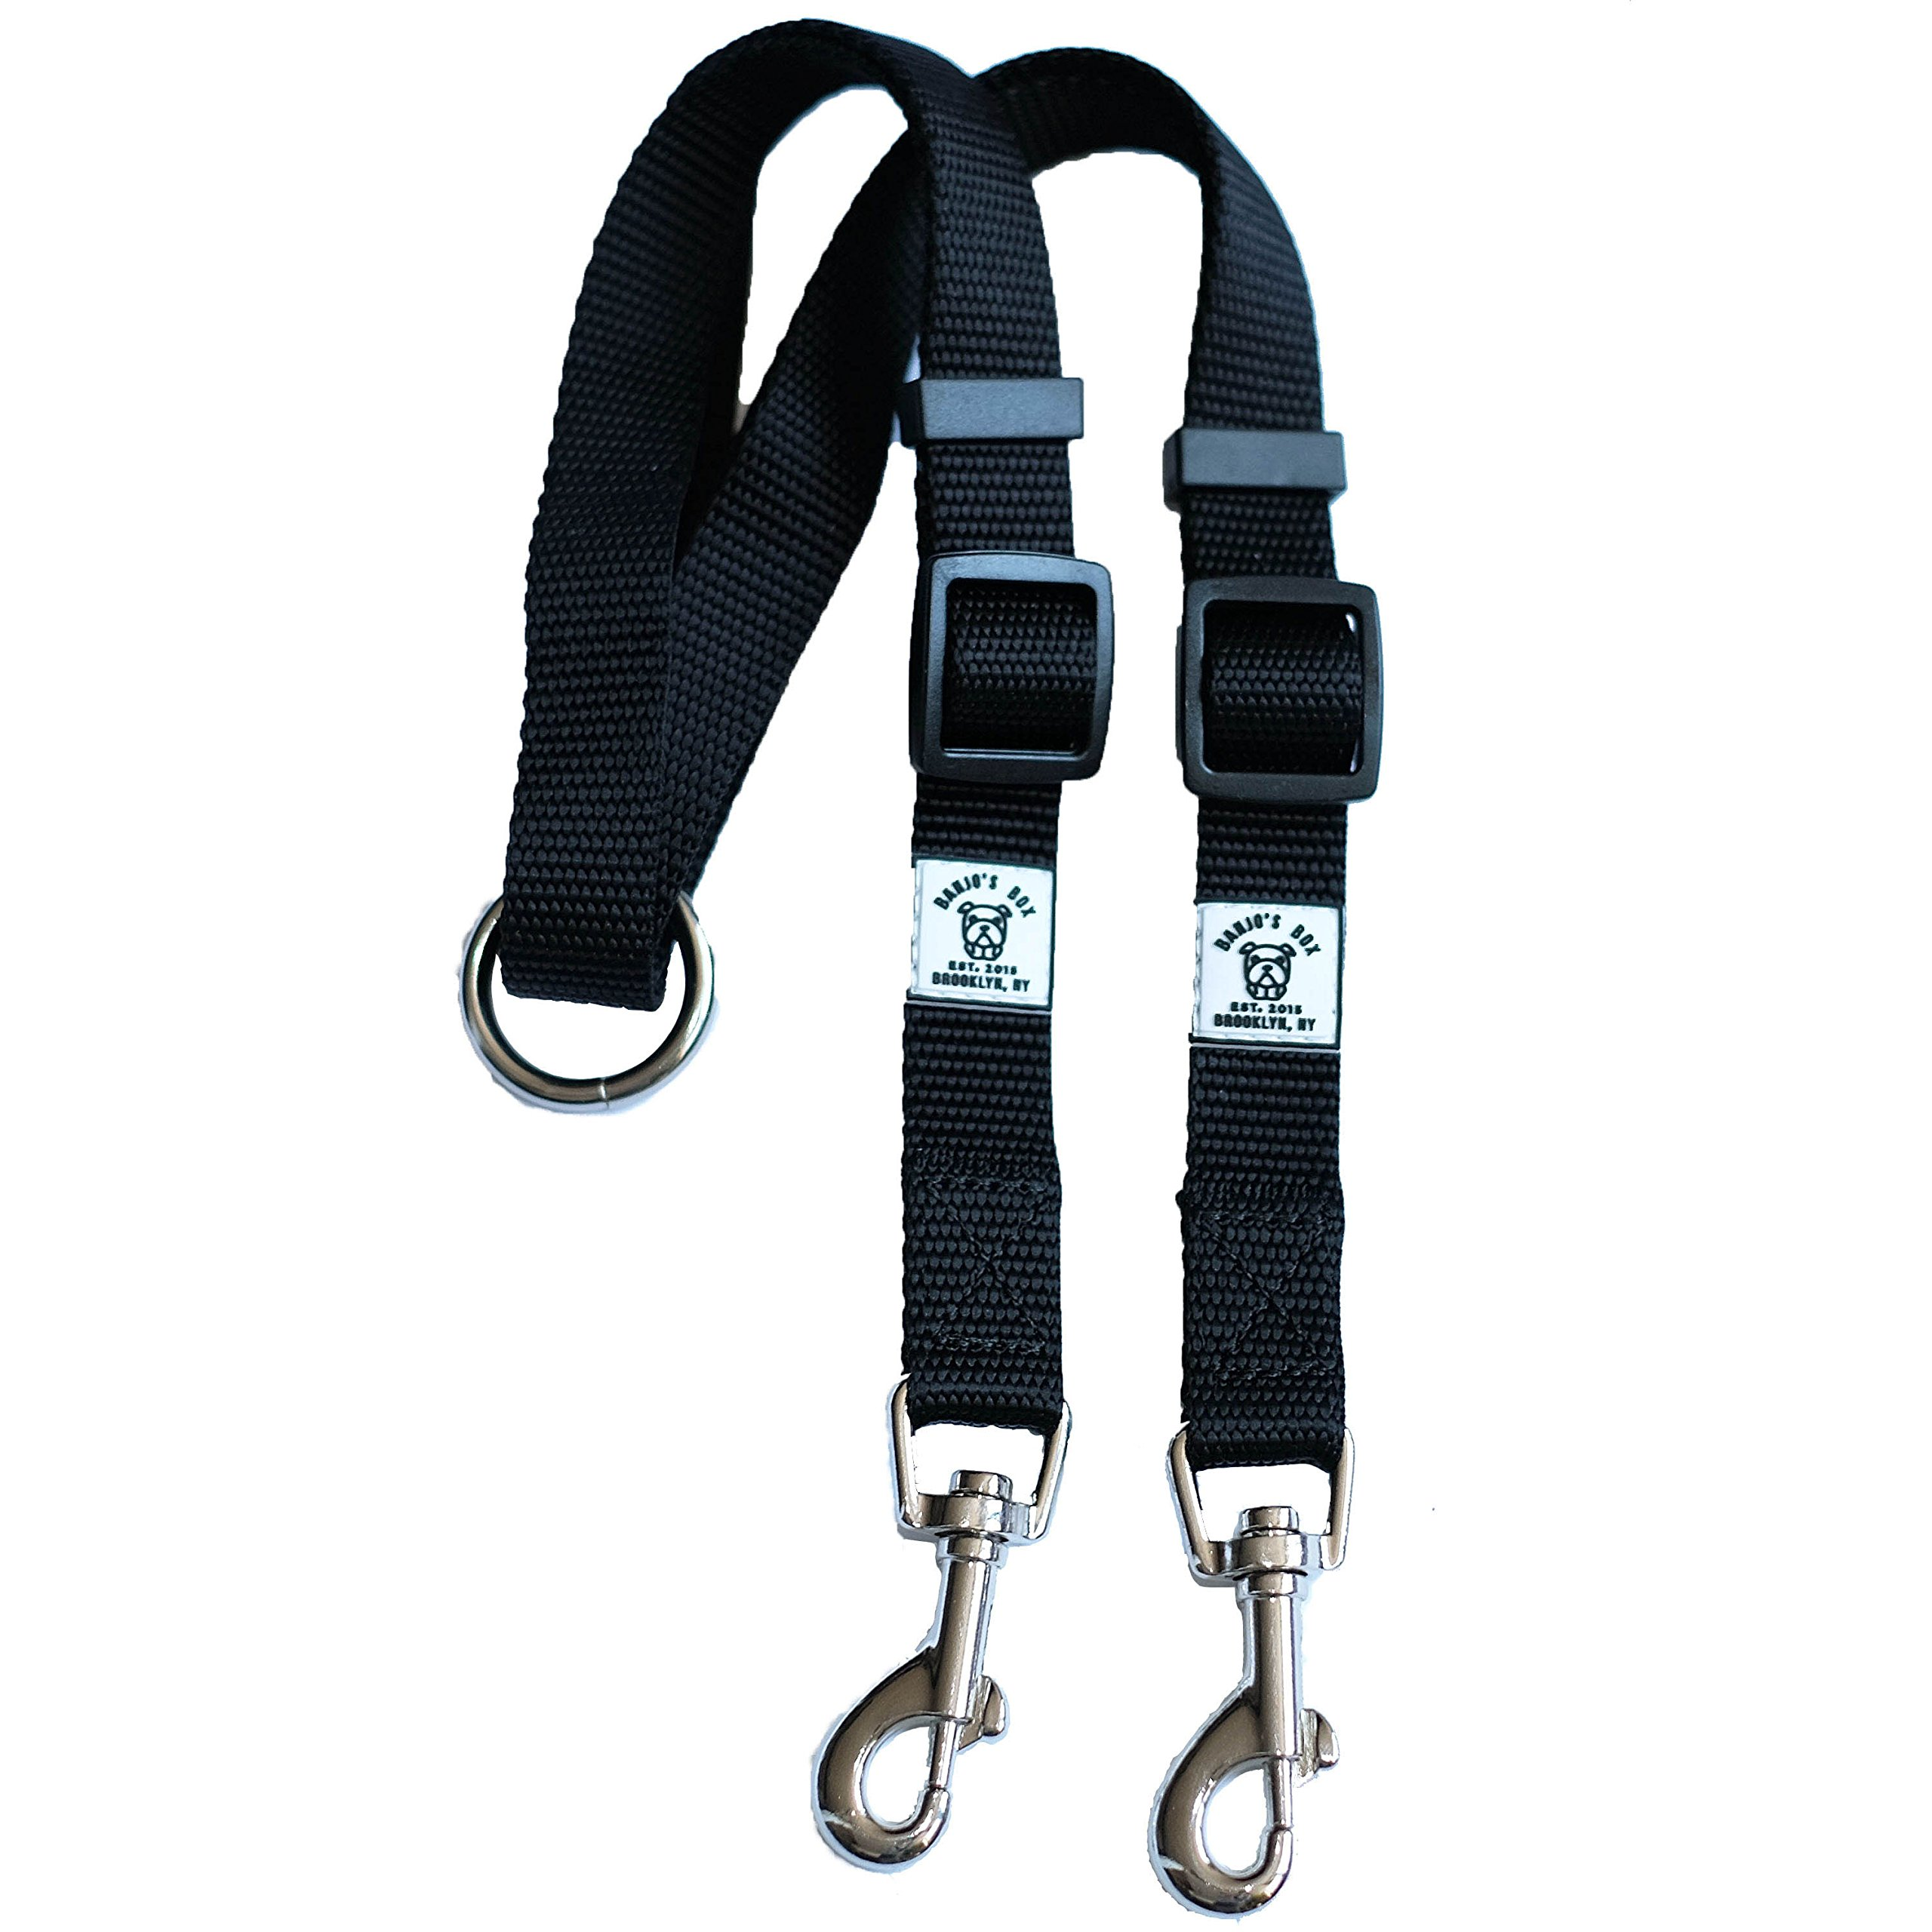 Premium Quality Tangle Free Double Dog Leash Coupler and Walker For Small, Medium & Large Dogs ... by Banjo's Box